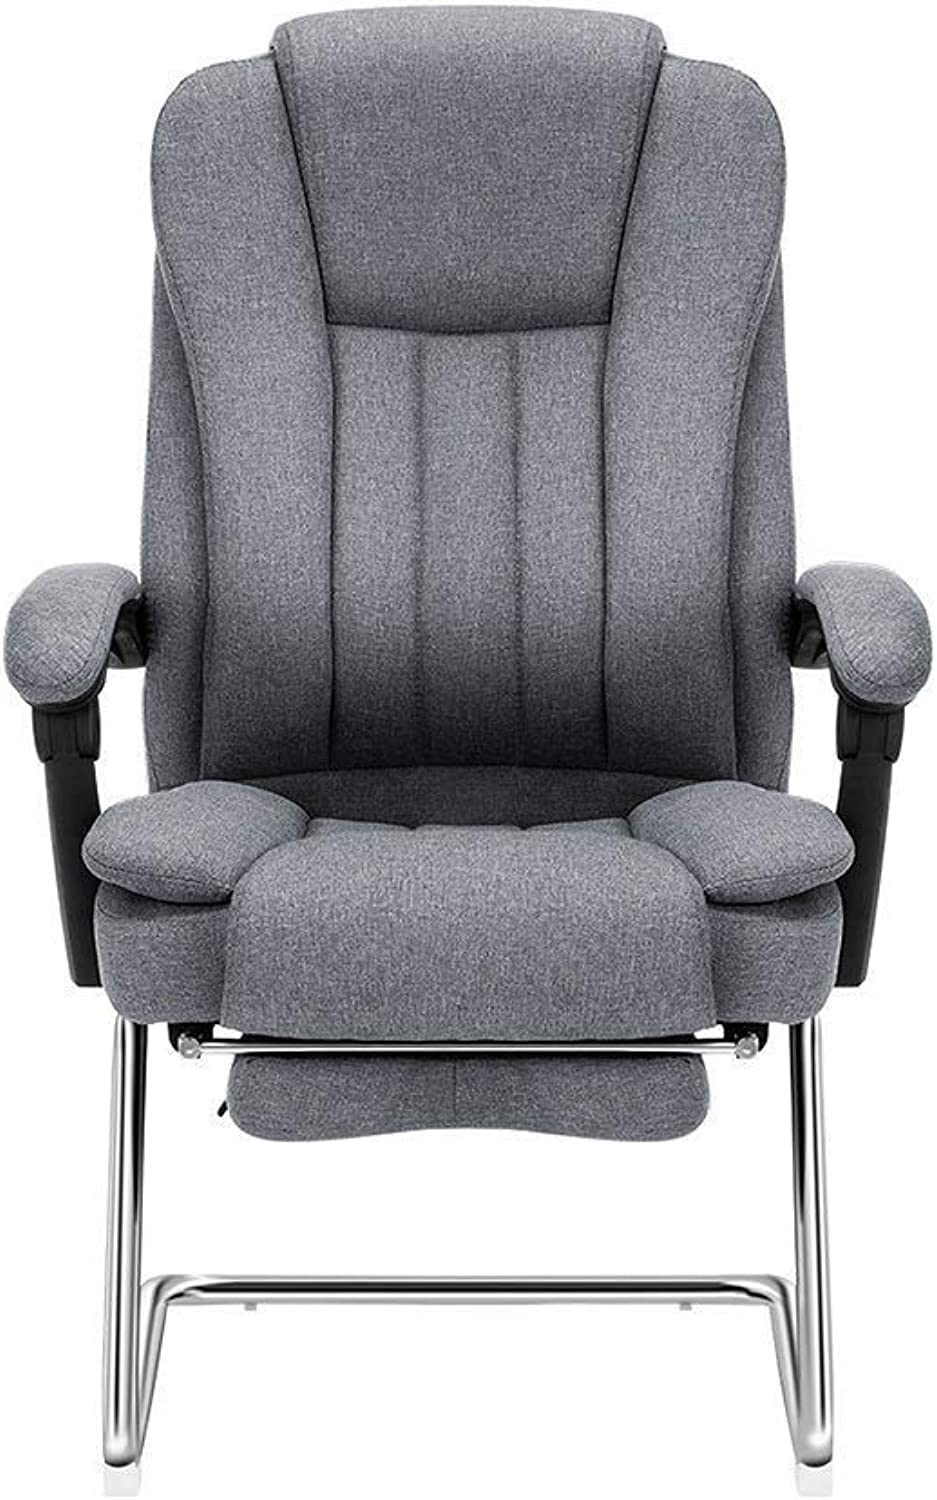 RMXAK High Back Executive Office Chair with Adjustable Tilt AngleExecutive Black Office Chair, Swivel and tilt, with Extra Thick Padding, Height Adjustment.